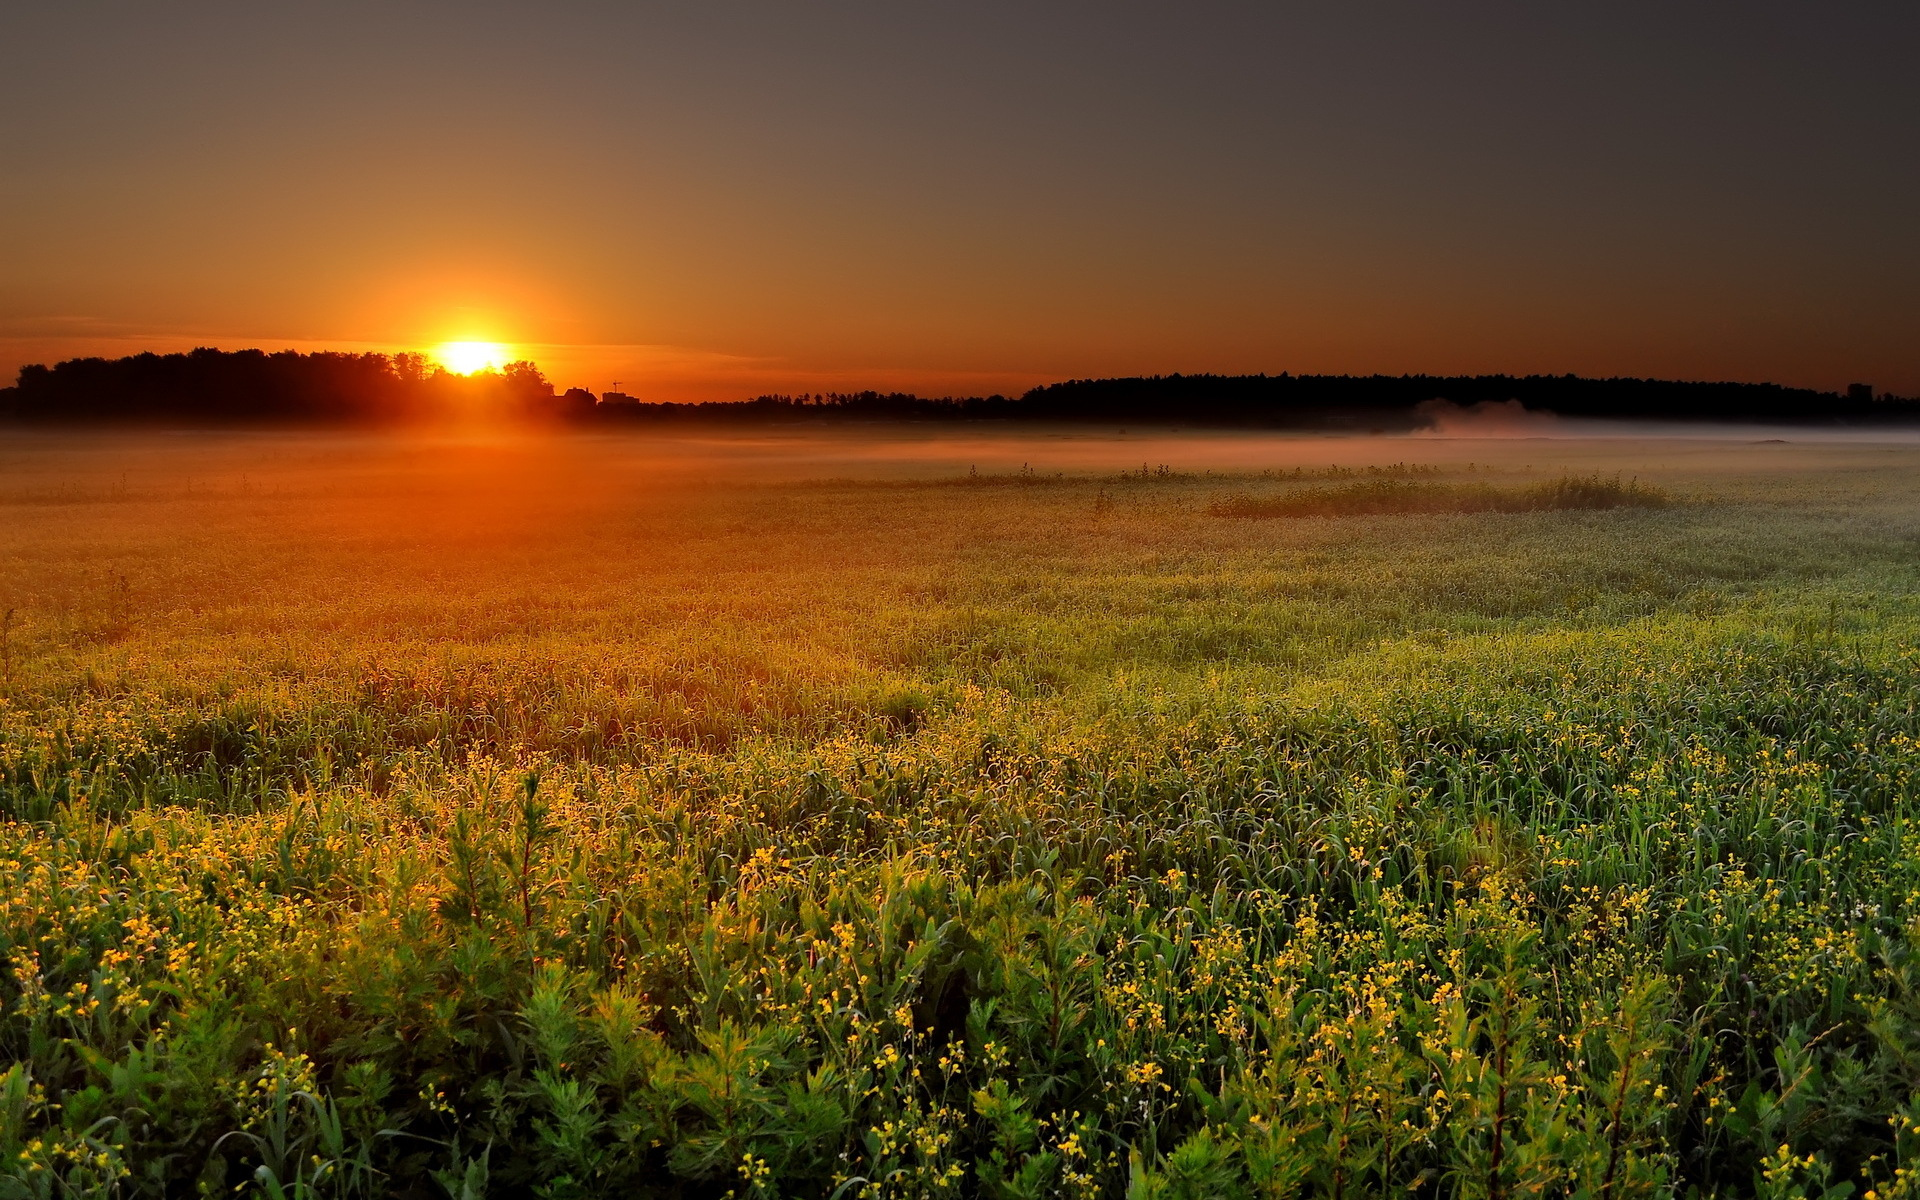 Sunset from the wild field / 1920 x 1200 / Sunriseandsunset ...